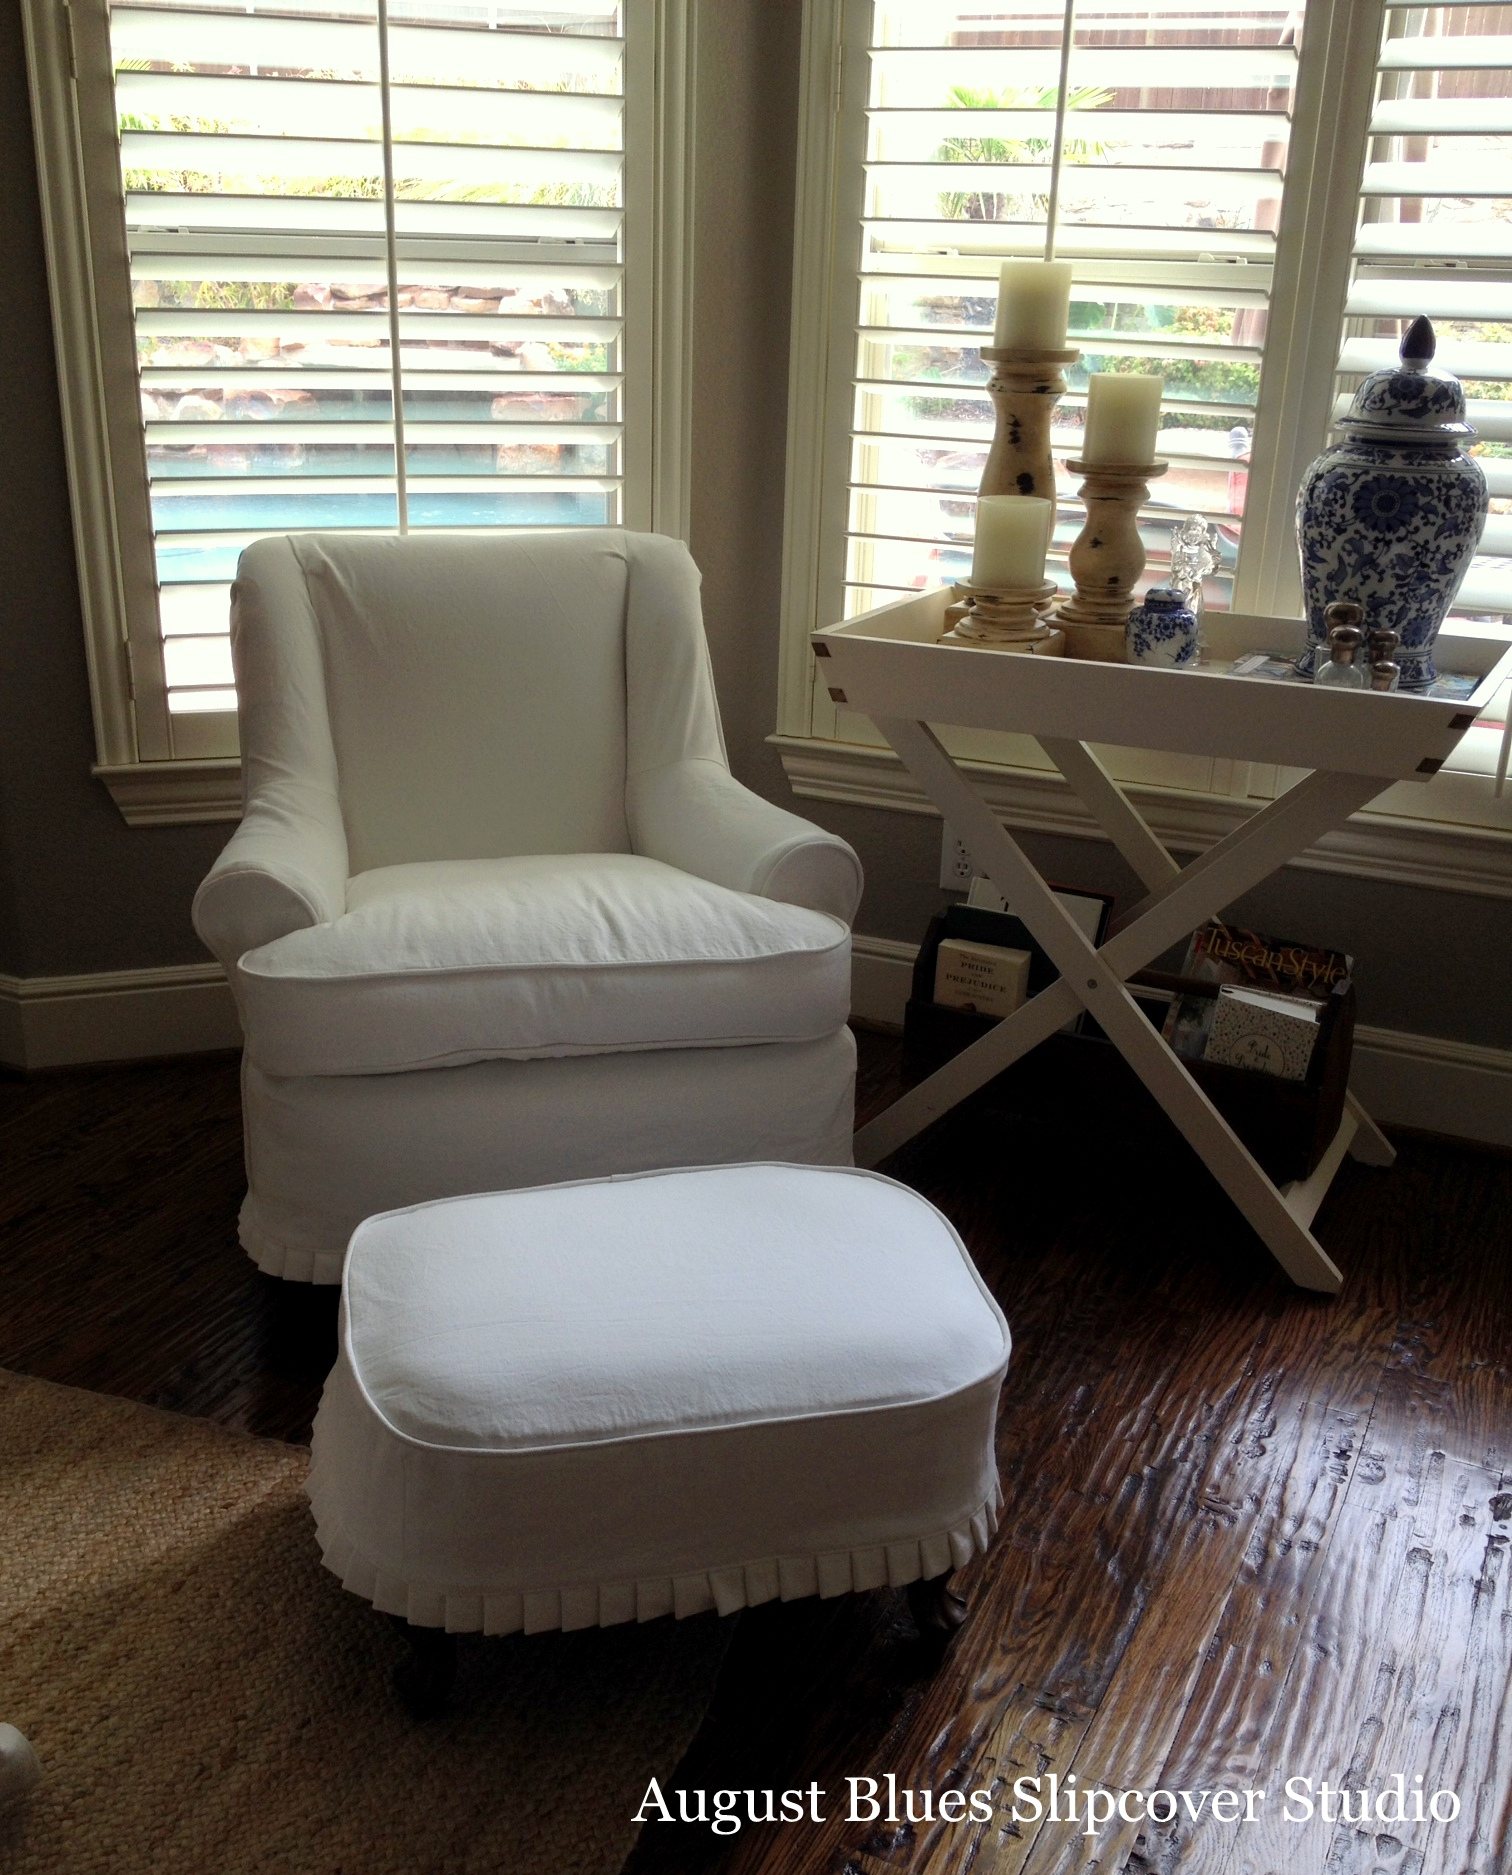 August Blues - Chair at Home